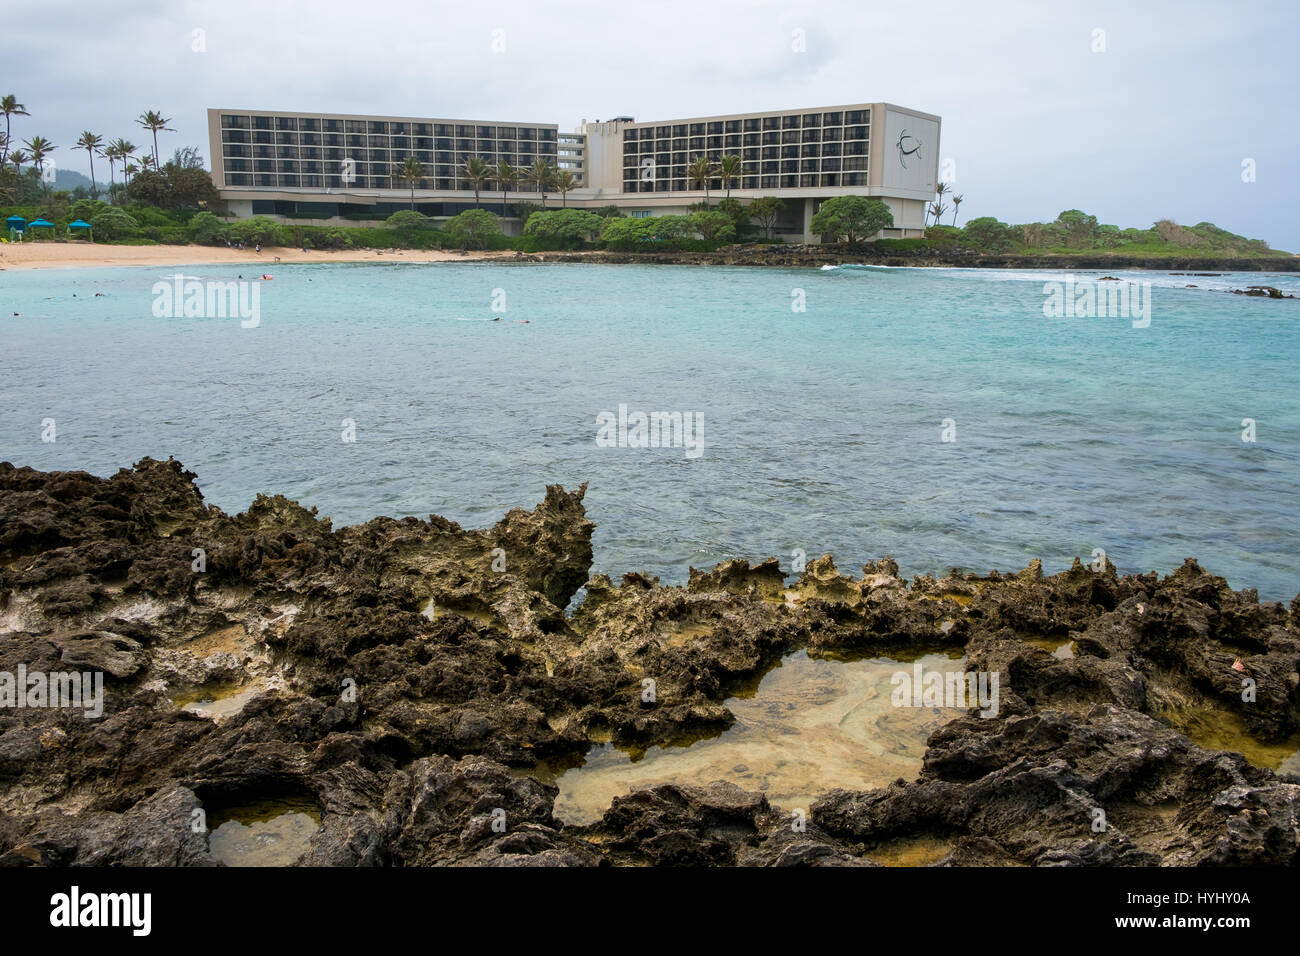 TURTLE BAY, OAHU, HAWAII - FEBRUARY 19, 2017: Backside of the famed Turtle Bay Resort on the North Shore of Oahu - Stock Image